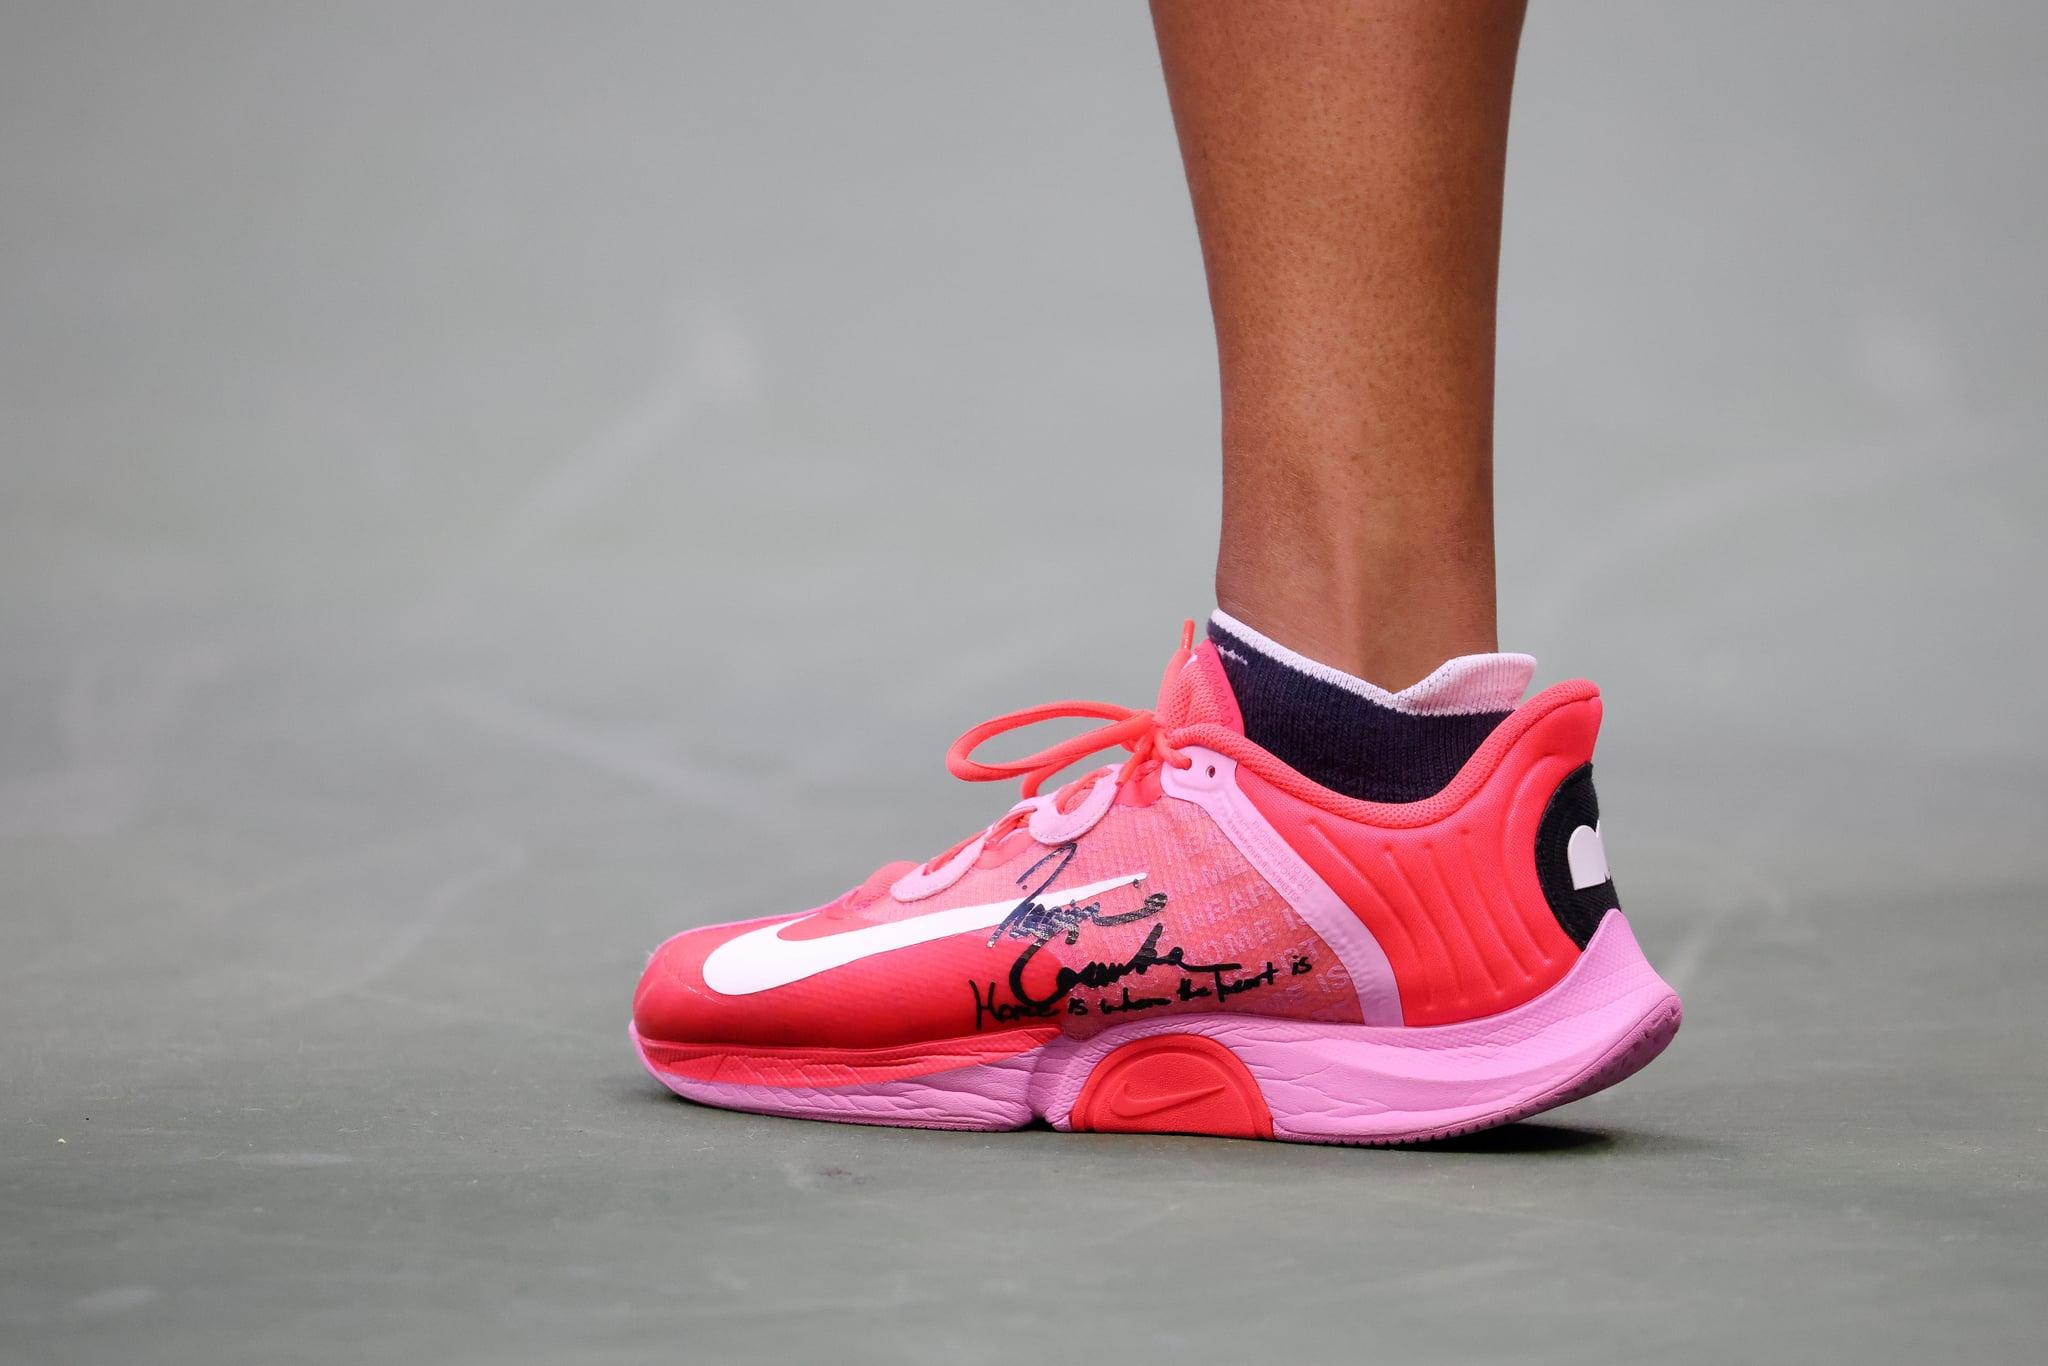 Naomi Osaka Sent A Moving Message With Her Us Open Sneakers Home Is Where The Heart Is